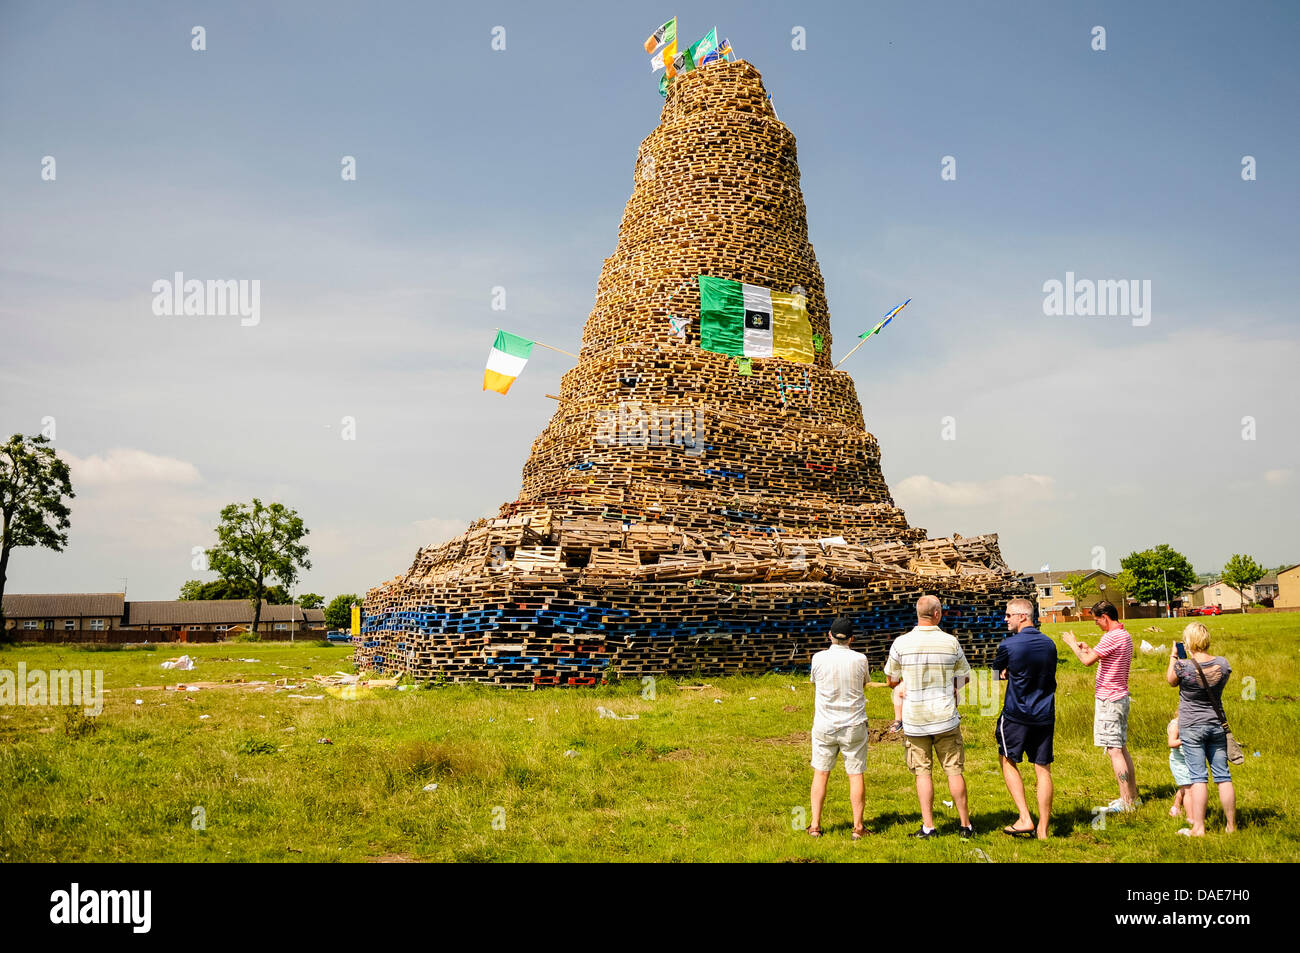 Newtownabbey, Northern Ireland. 11th July 2013. People gather to see an enormous bonfire, estimated at over 30m - Stock Image